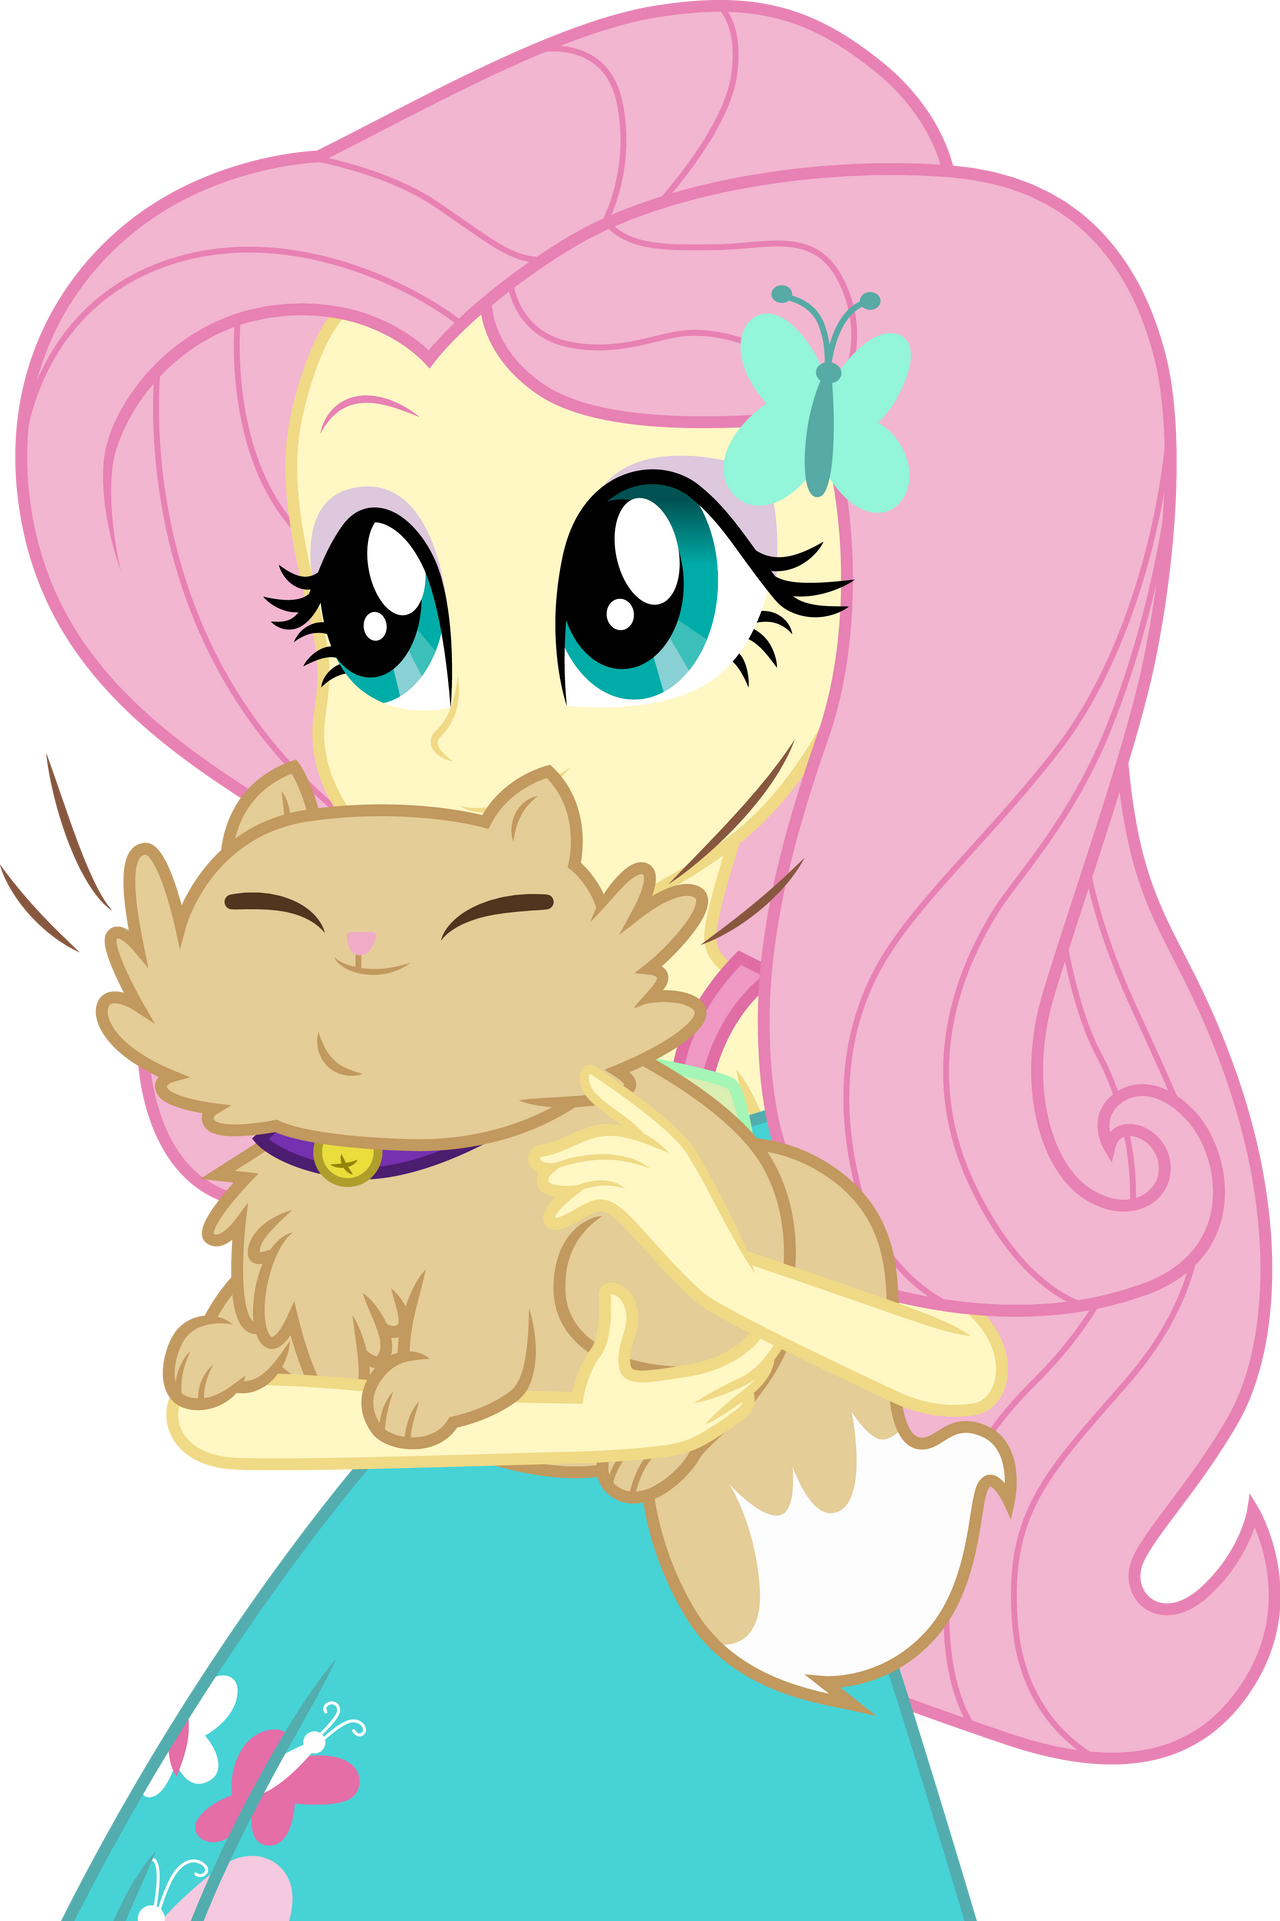 fluttershy_with_a_cat_by_cloudyglow_ddt1